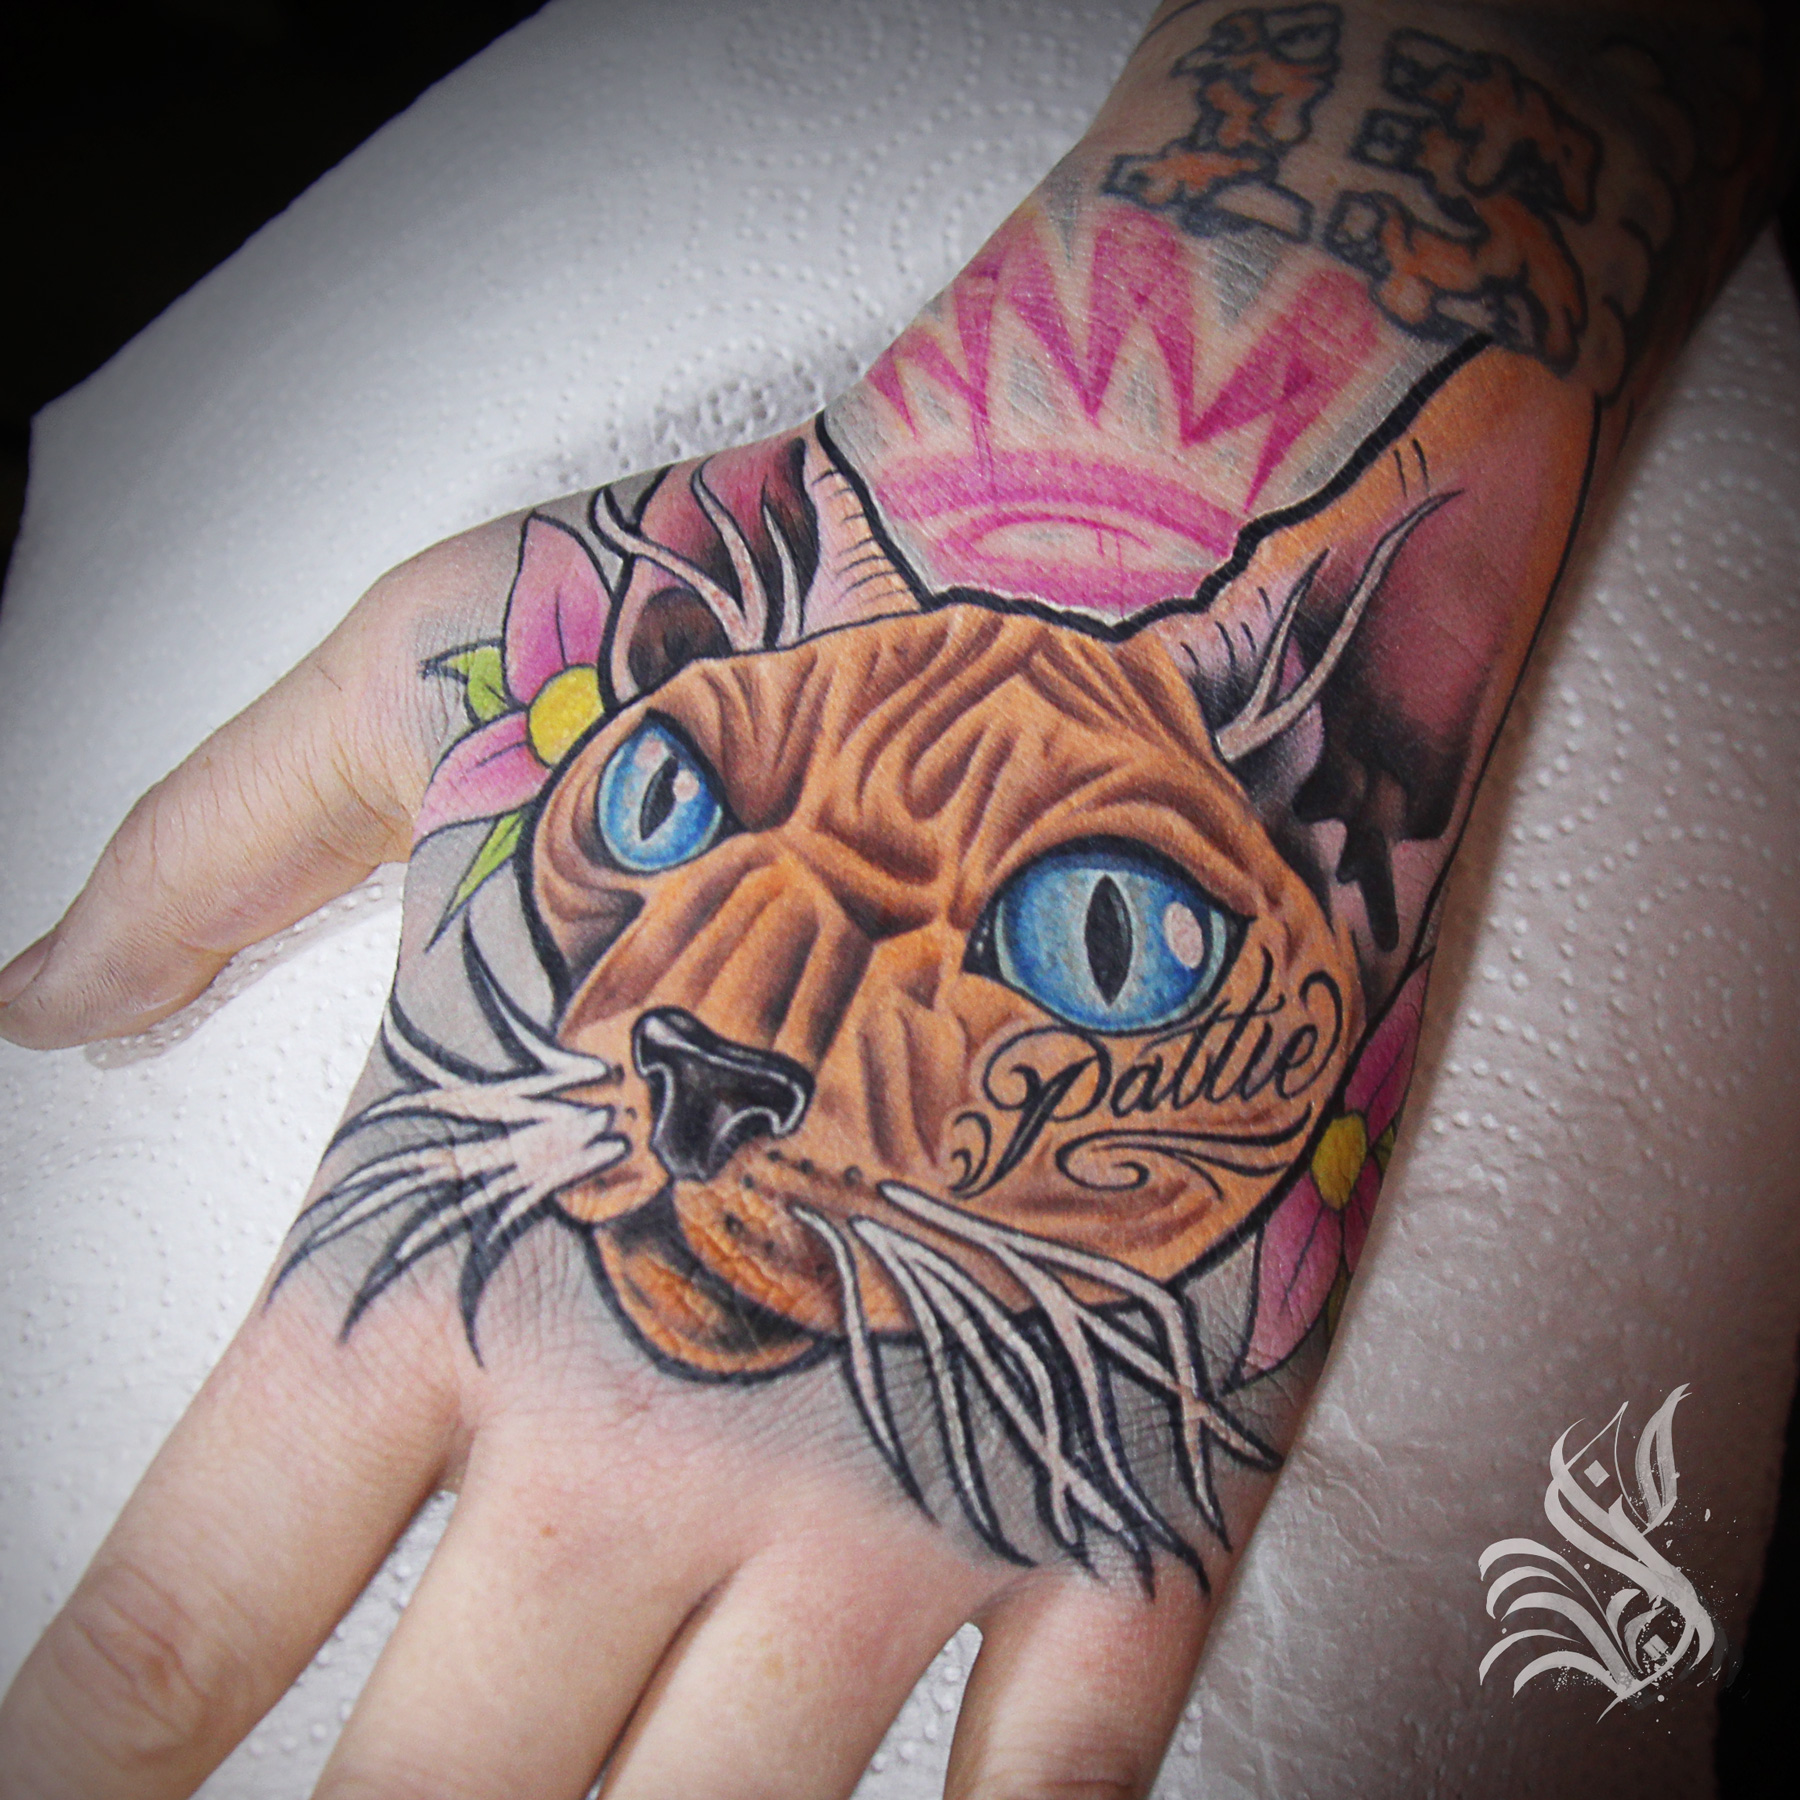 sorn-smb-tattoo-cat-ragnboneman-hand-brighton.jpg